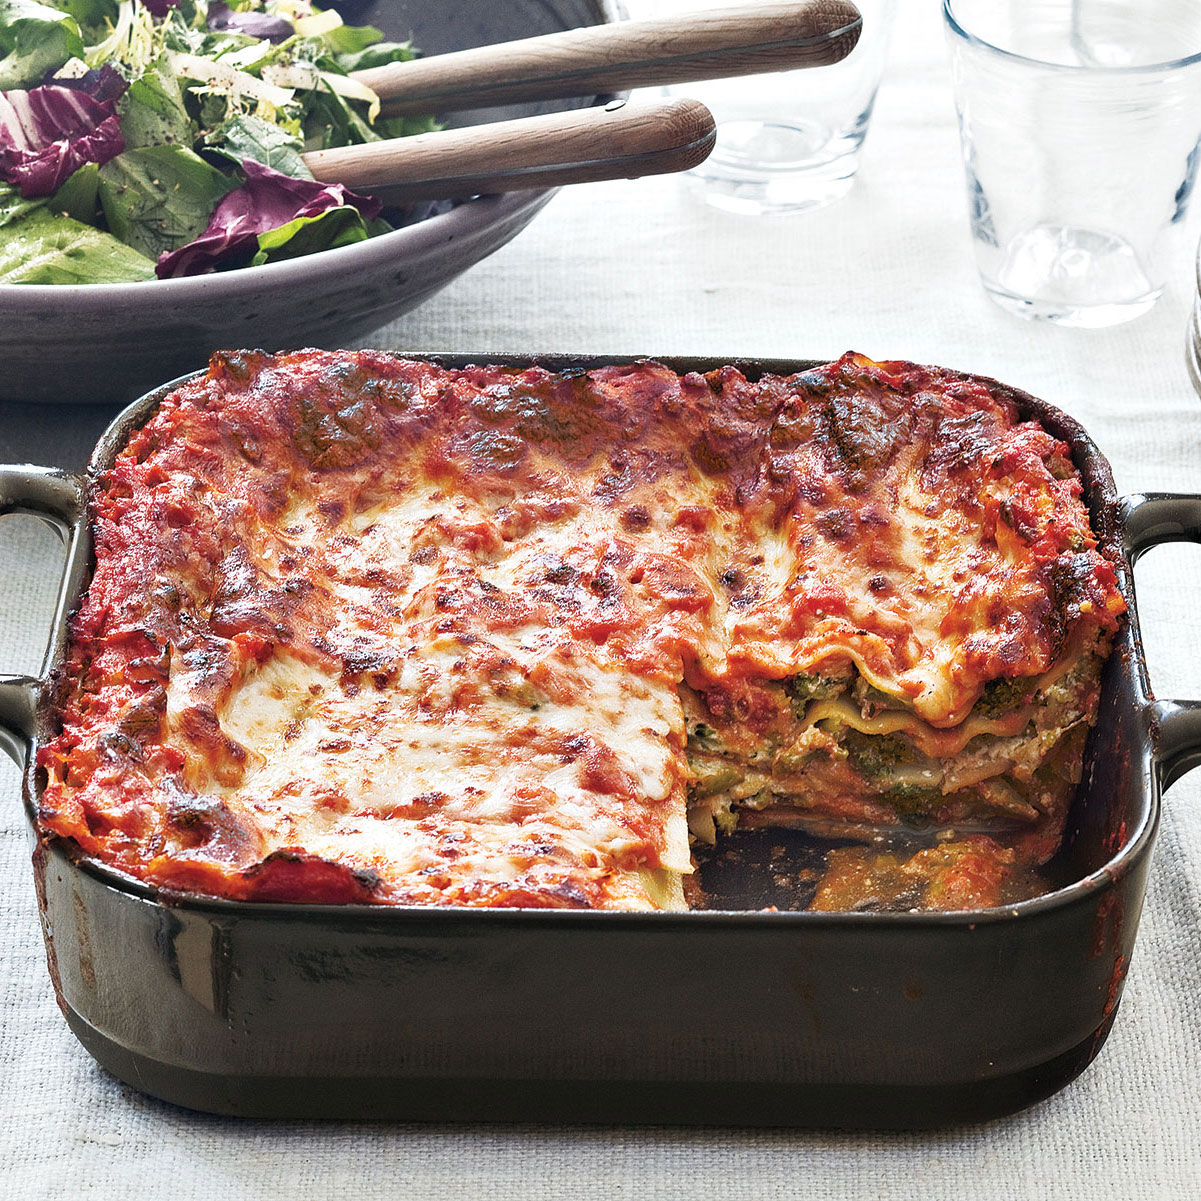 Easy pasta recipes - Broccoli and Three-Cheese Lasagna